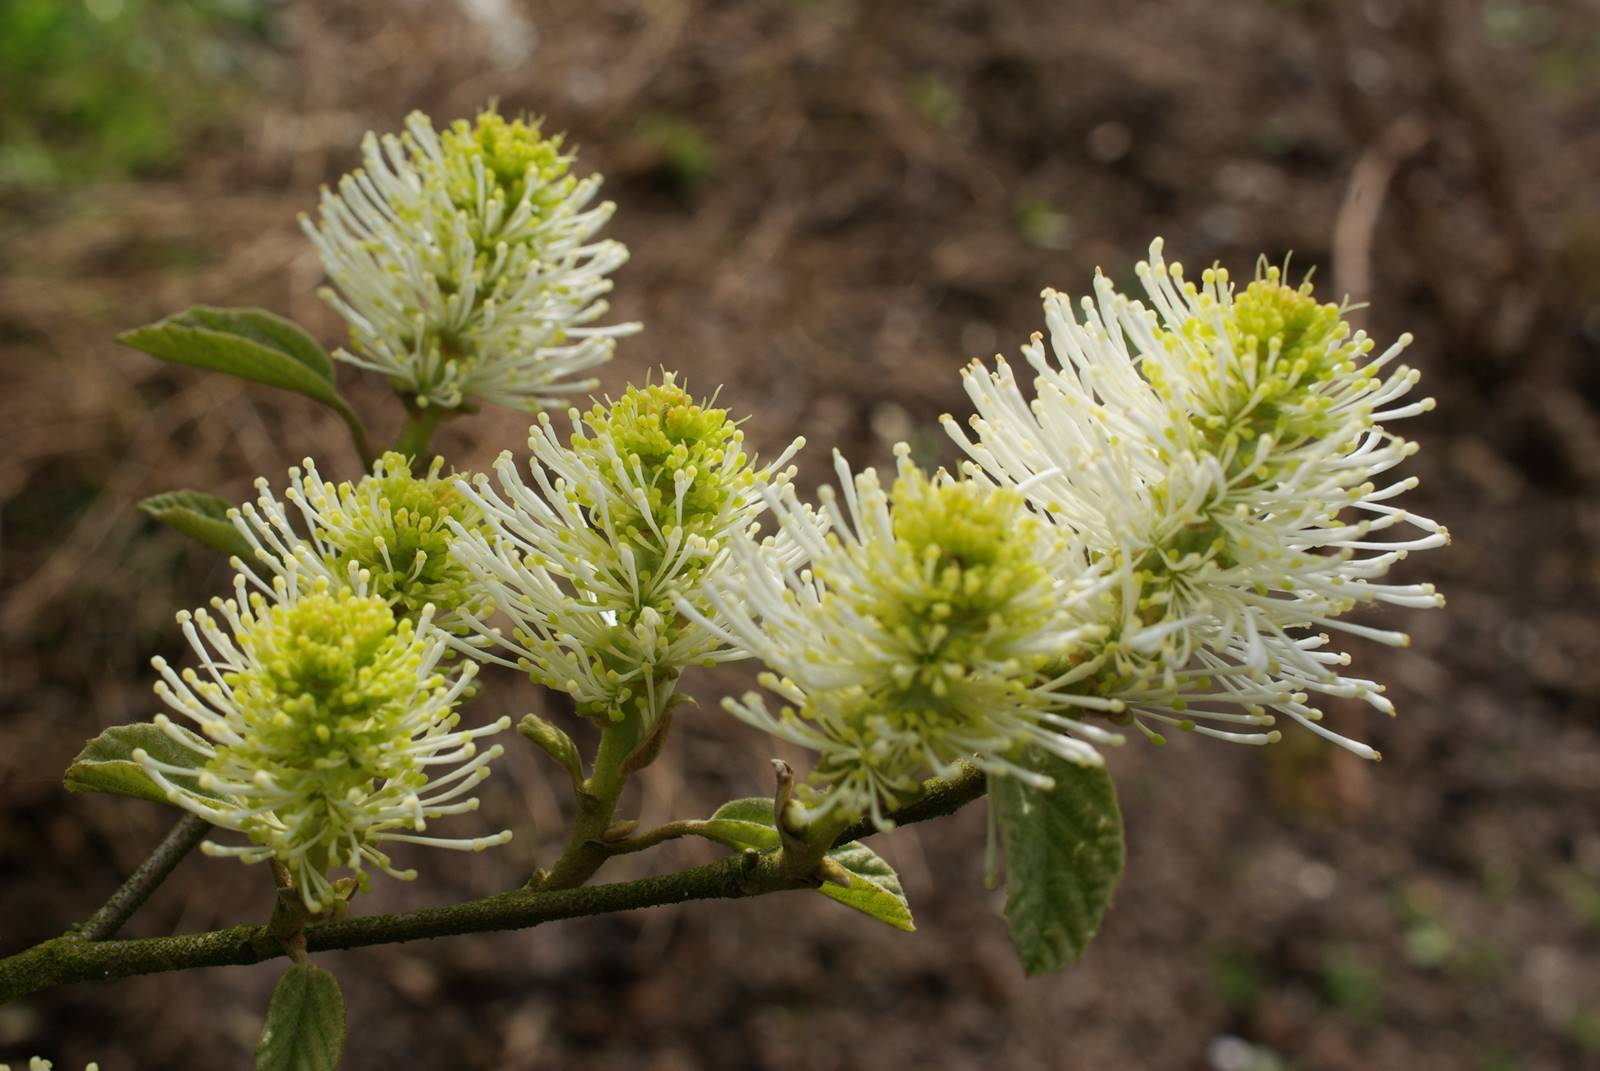 Forthergilla major